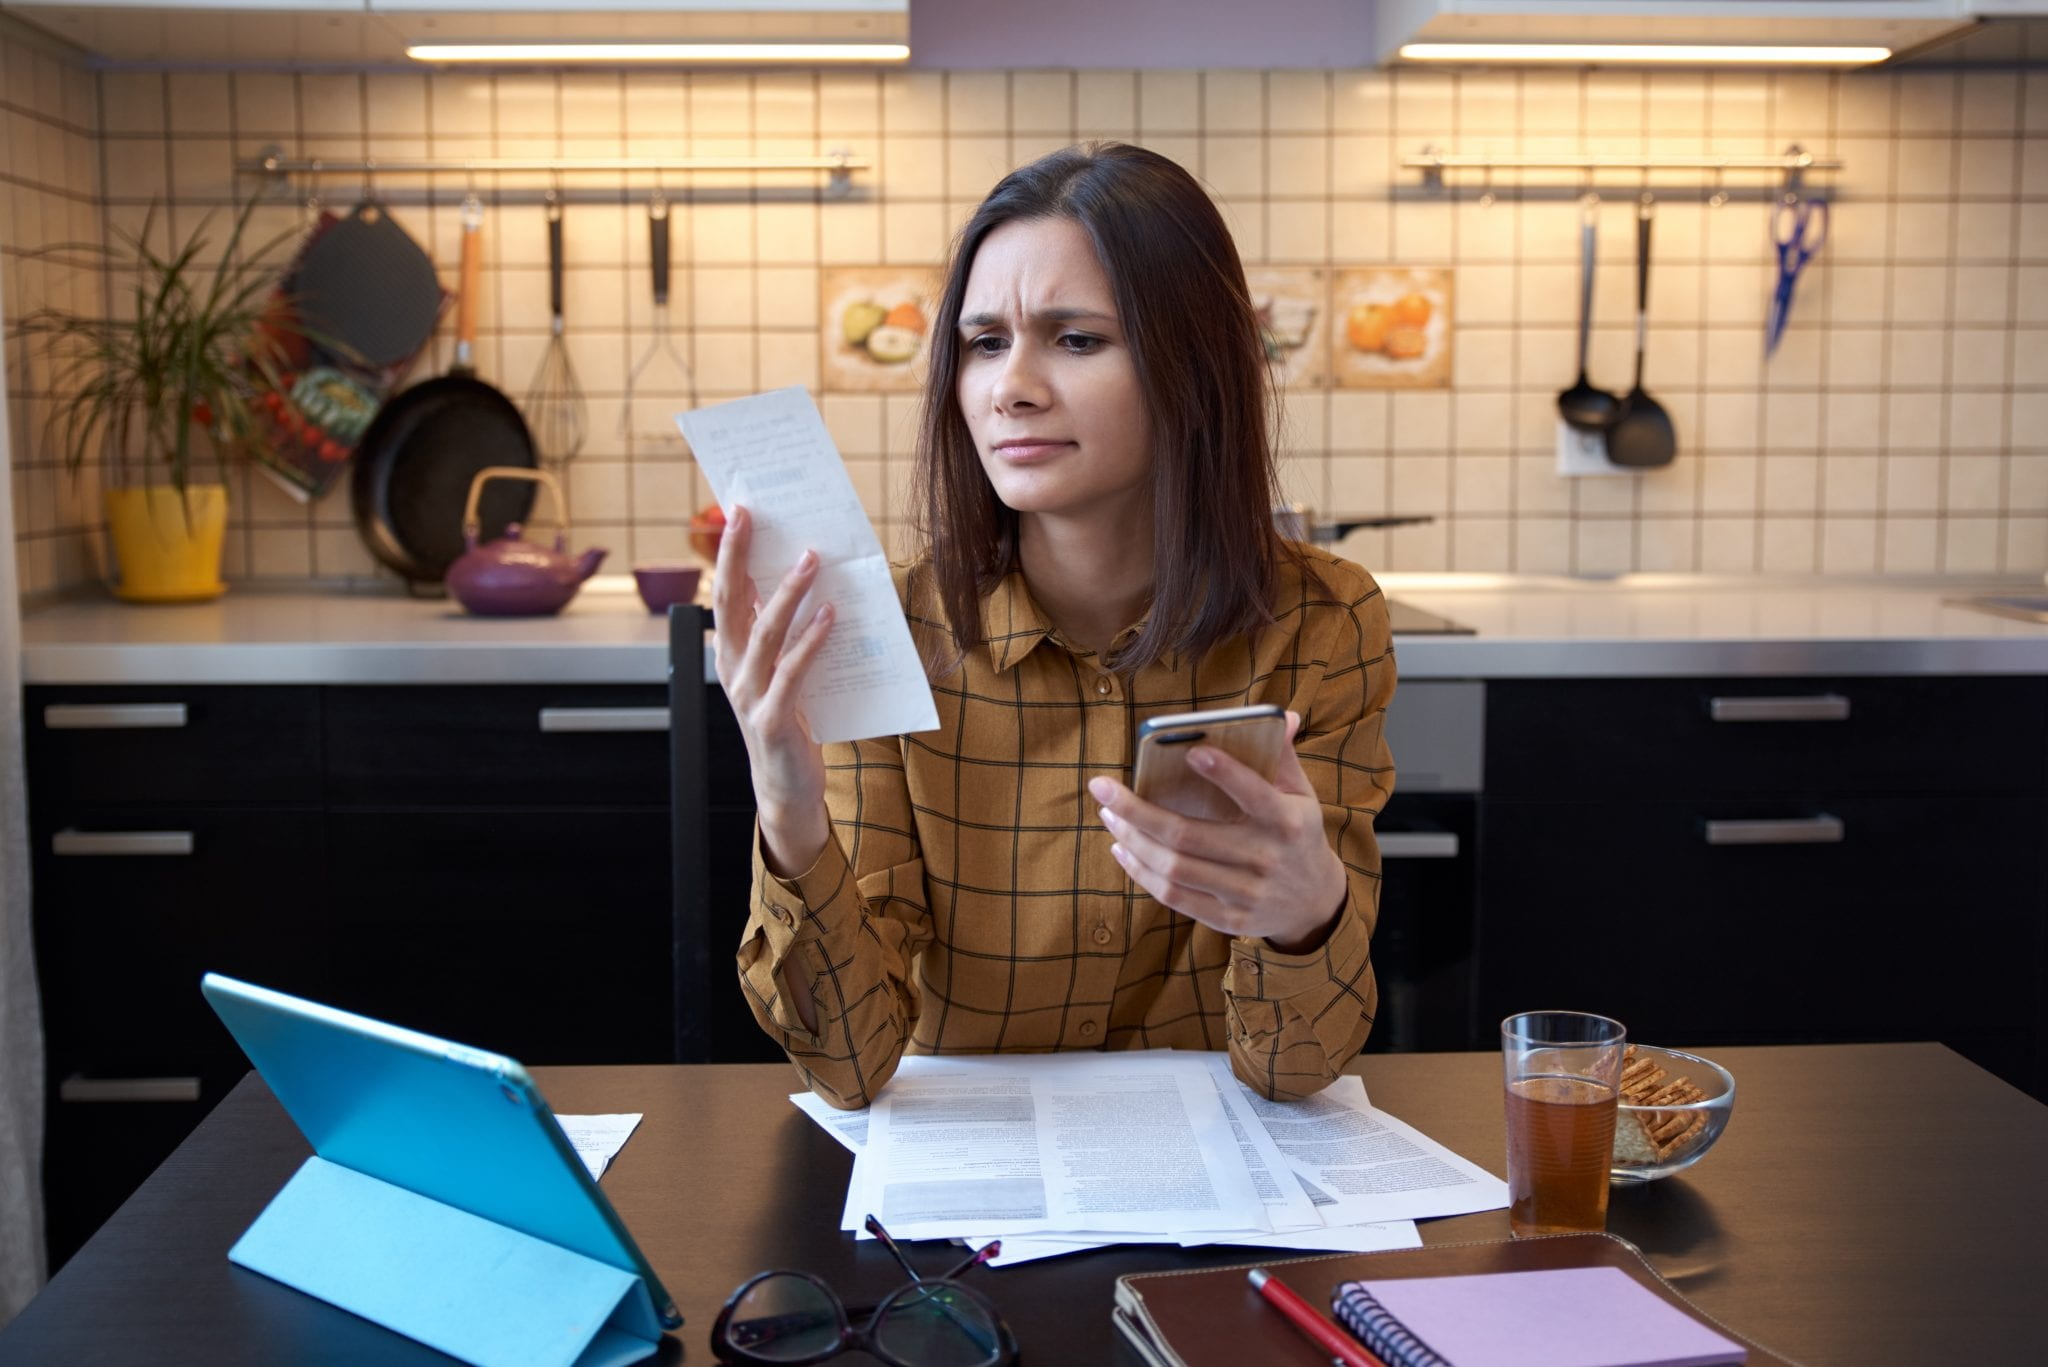 Woman looking at bills trying to figure out